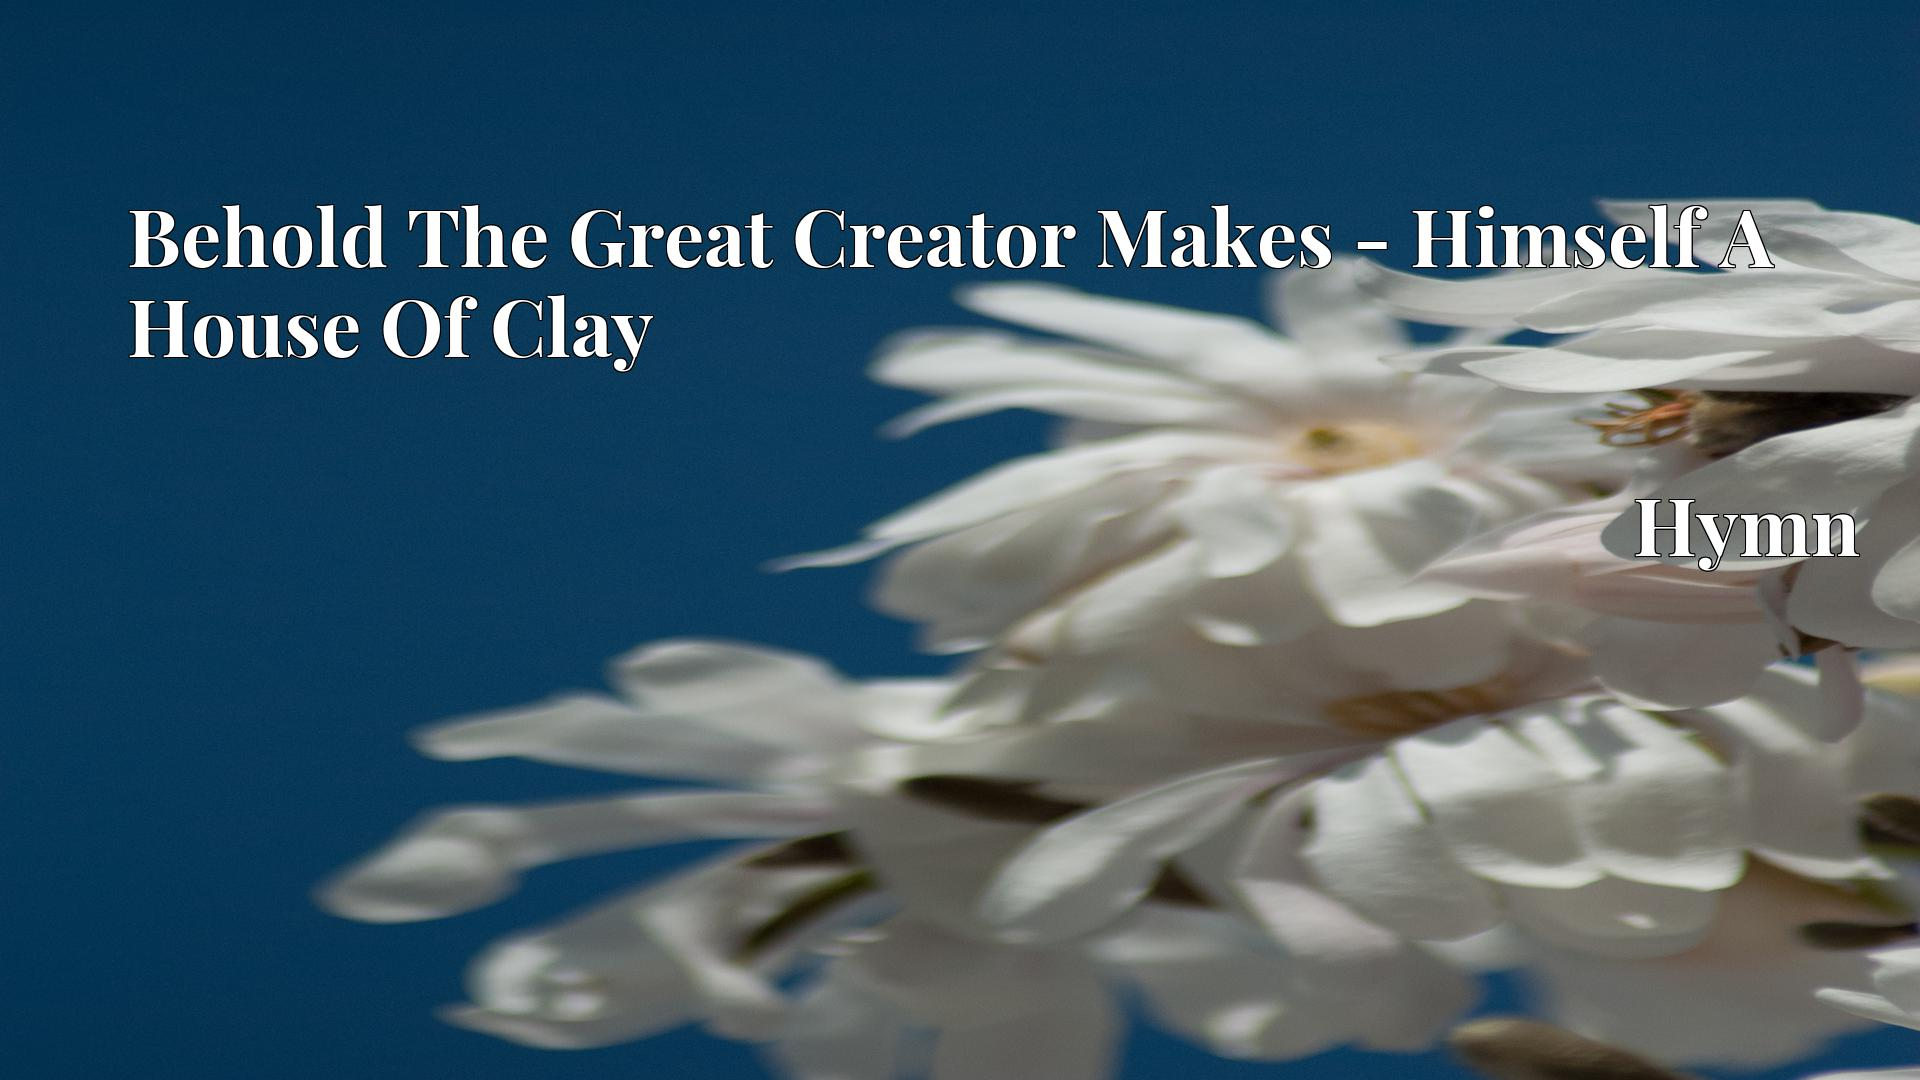 Behold The Great Creator Makes - Himself A House Of Clay Hymn